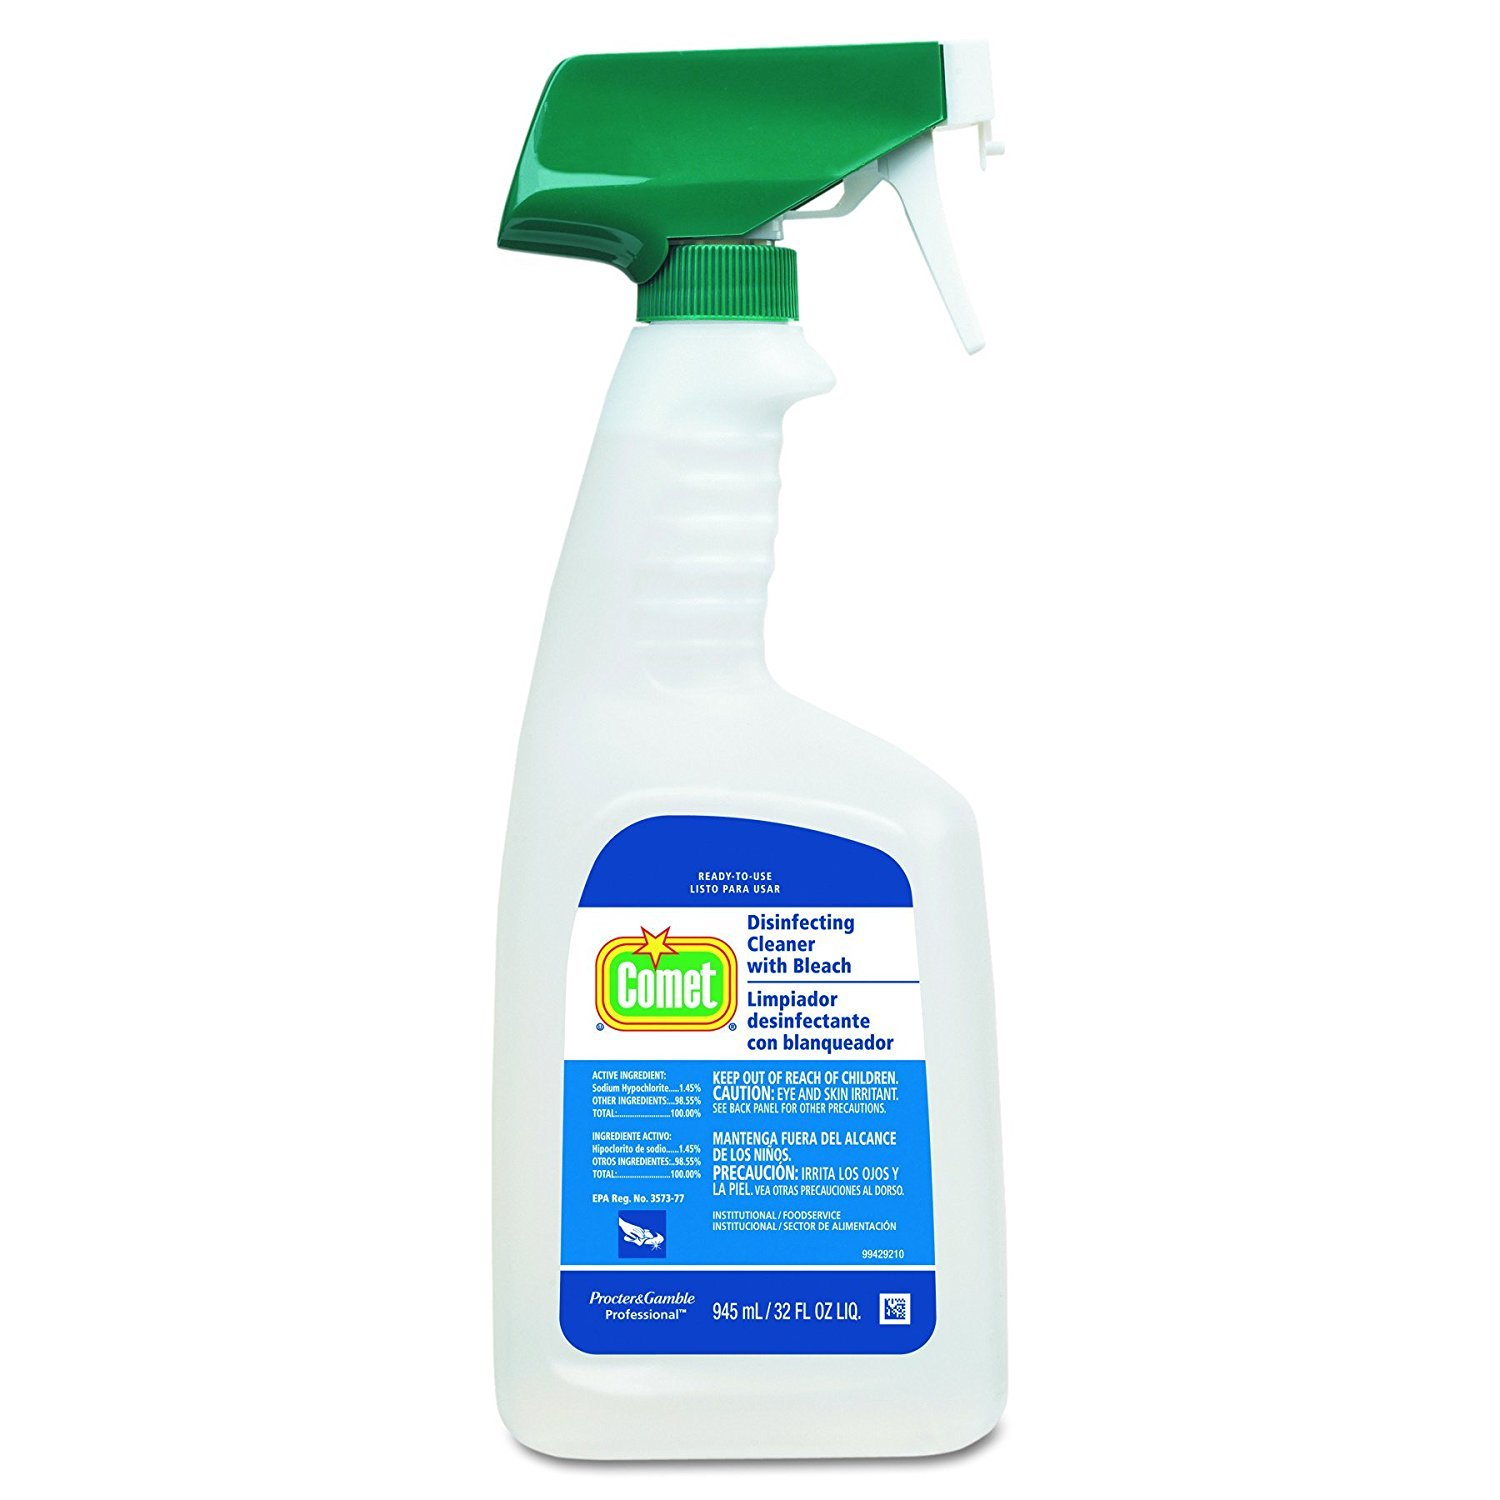 Hospital Grade Bulk Disinfecting Bathroom Sanitizer by Comet Professional, Multi-Purpose Spray Cleaner with Bleach Wipes up Pathogens for Commercial Use, 32 oz. (Case of 8)